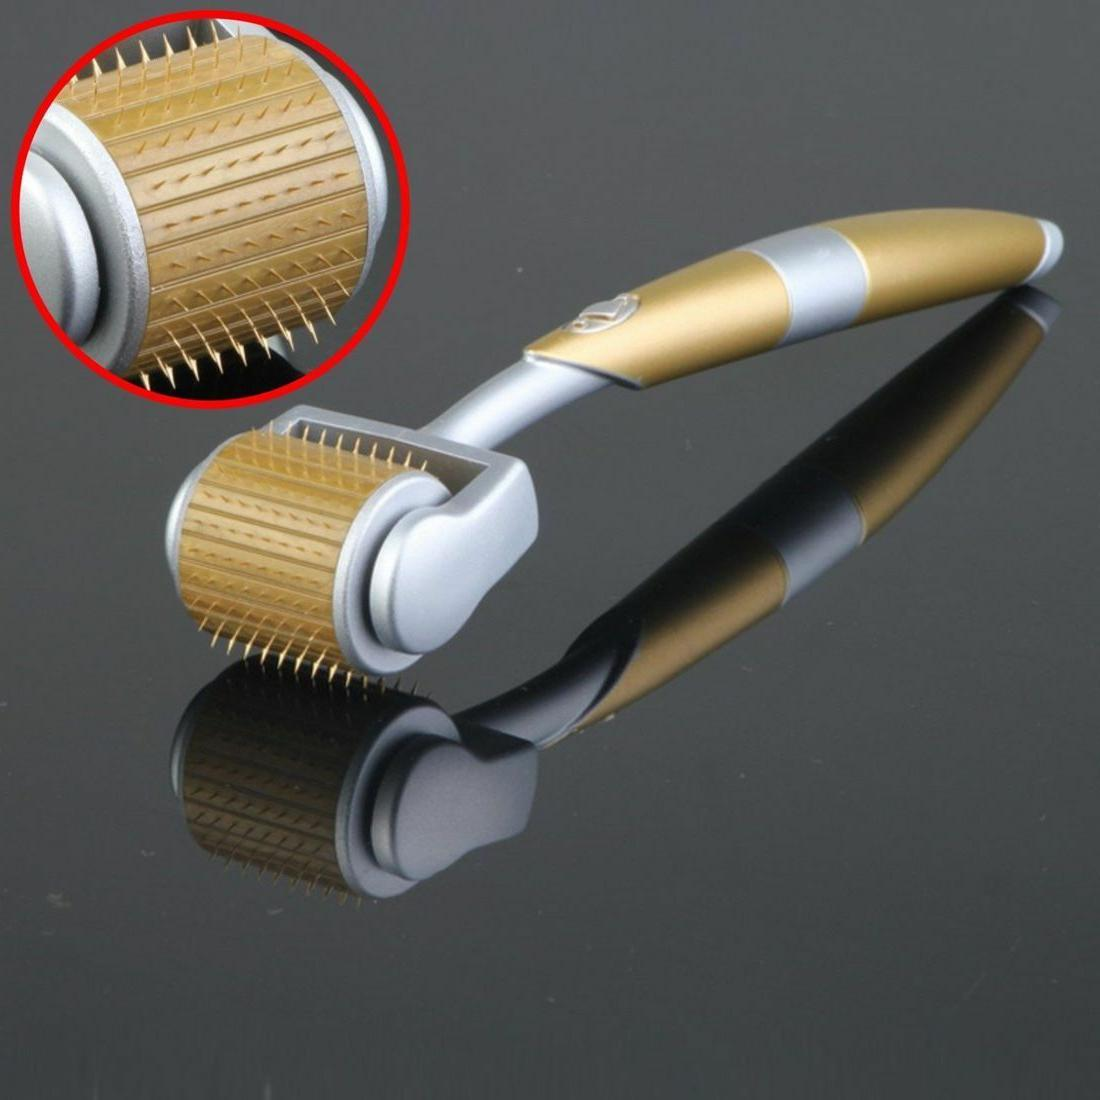 ZGTS Therapy Roller Skincare Acne Scar